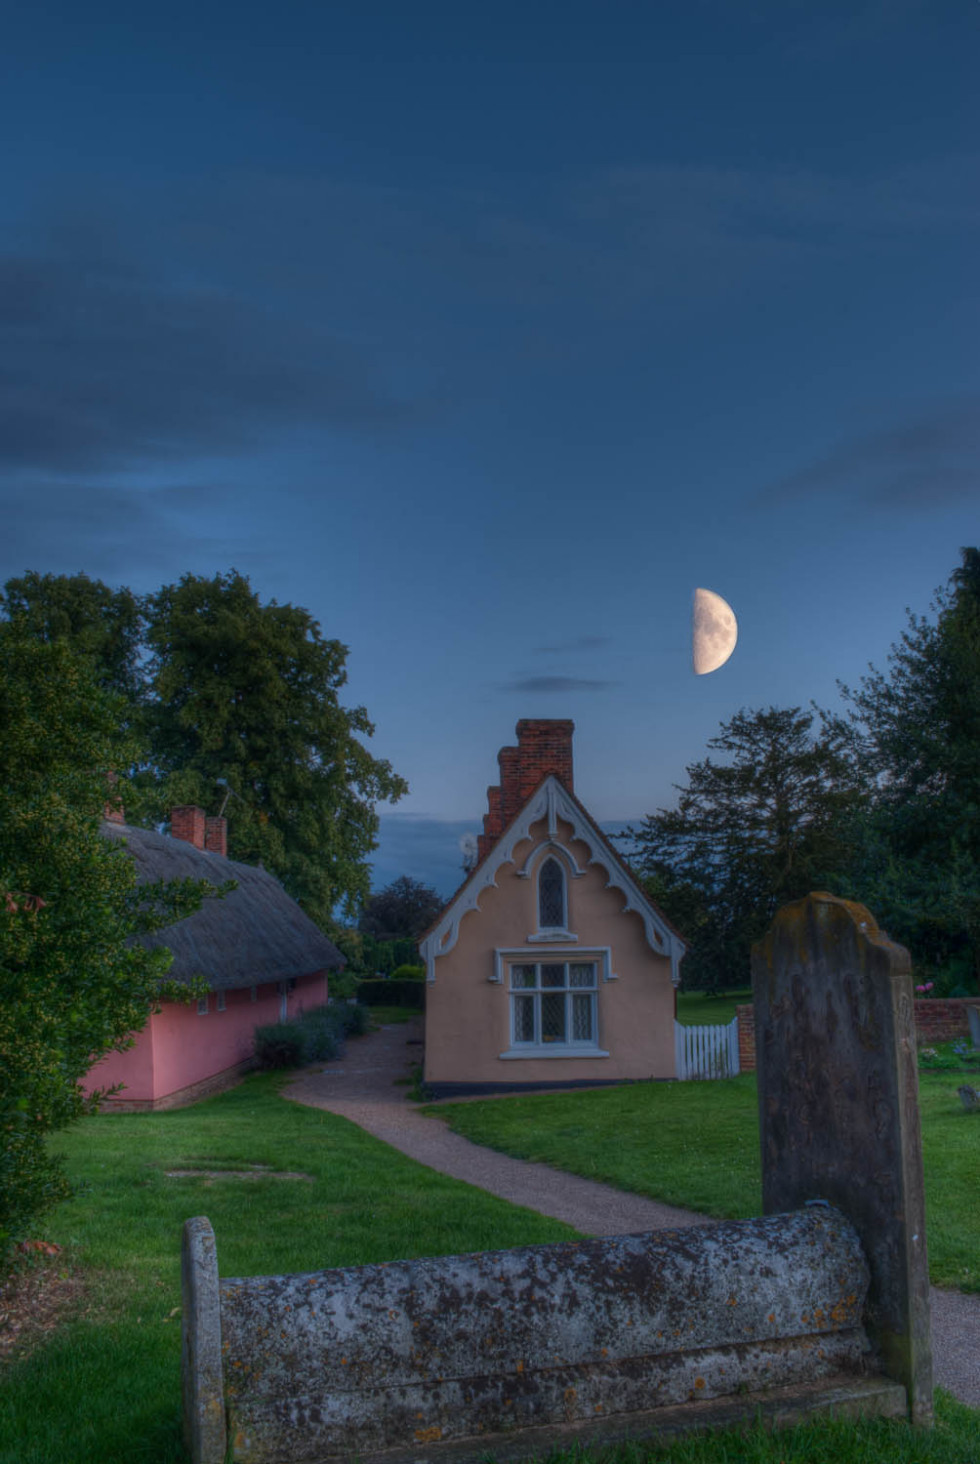 Almshouses and the moon at Thaxted